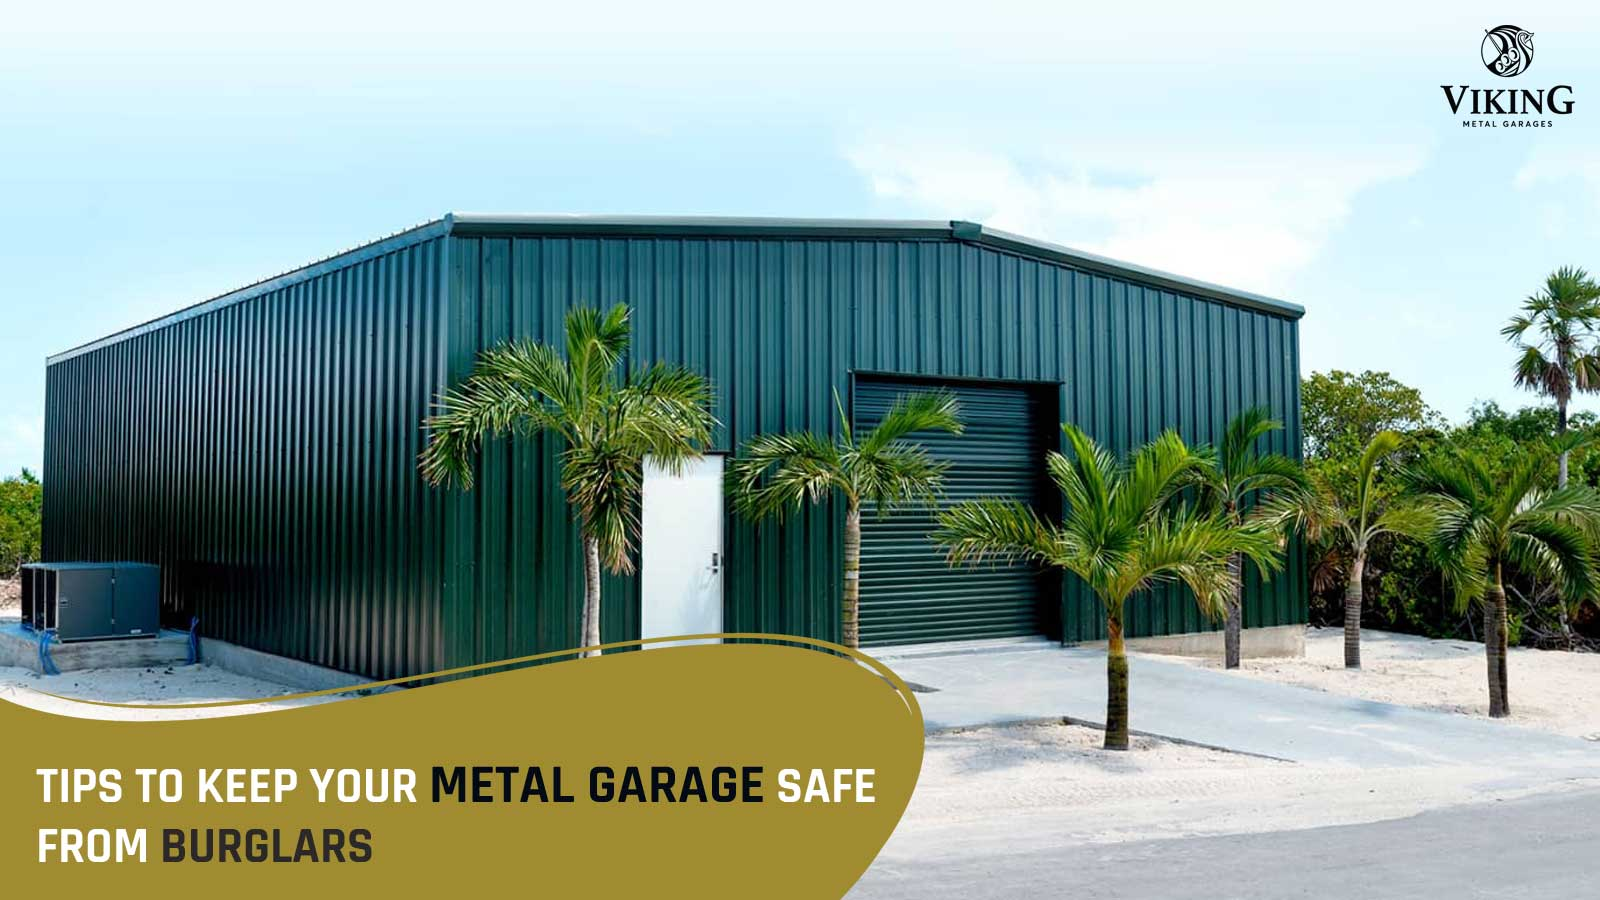 Tips to Keep Your Metal Garage Safe from Burglars